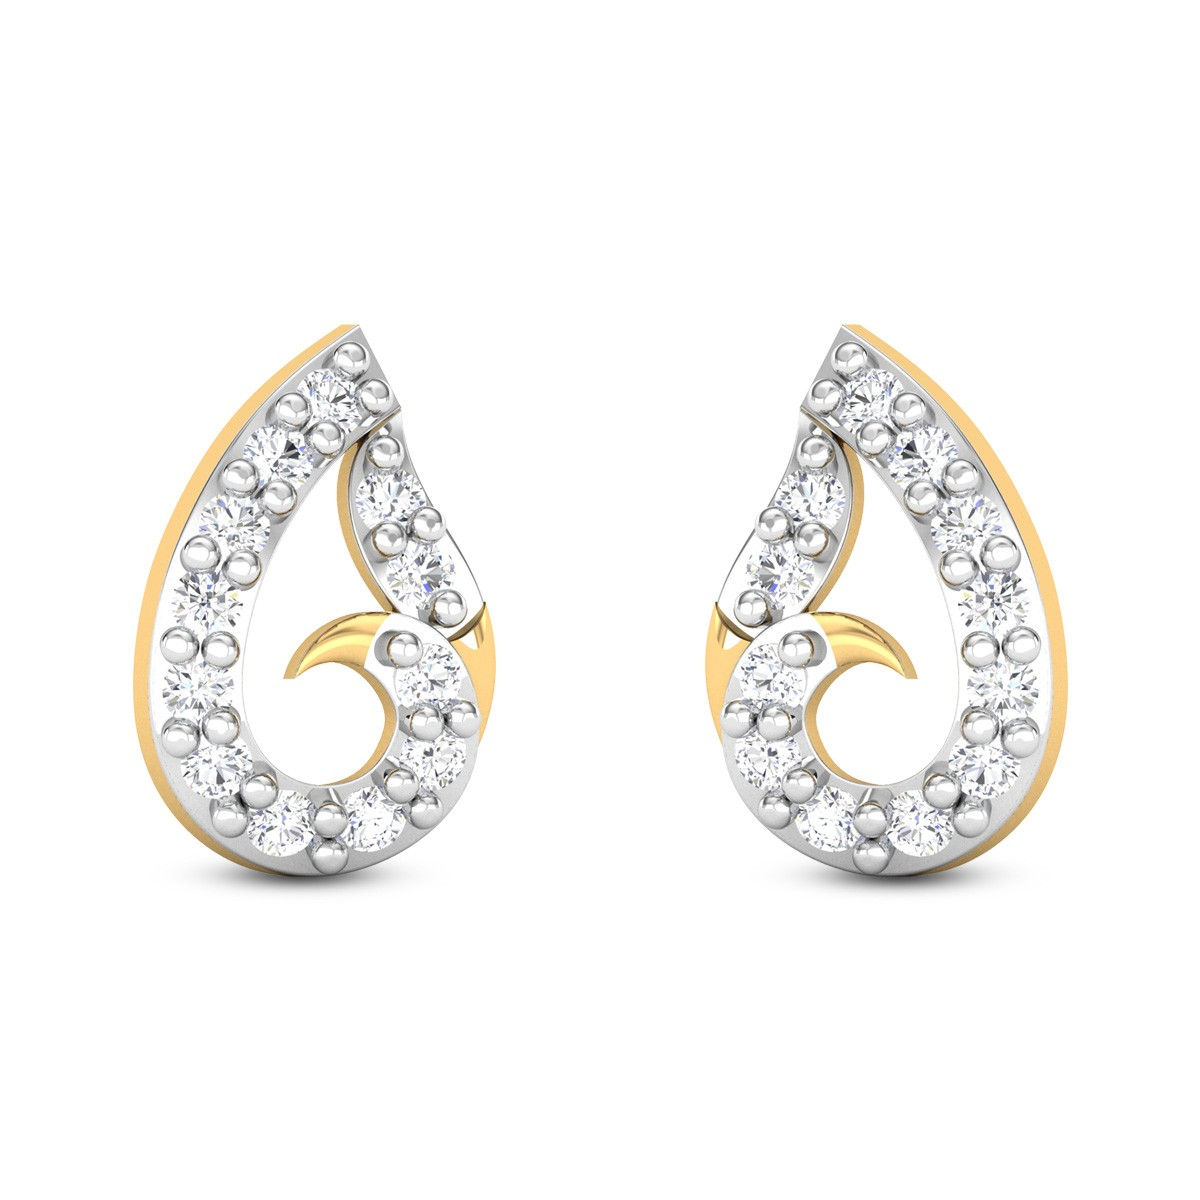 Teresa Diamond Earrings